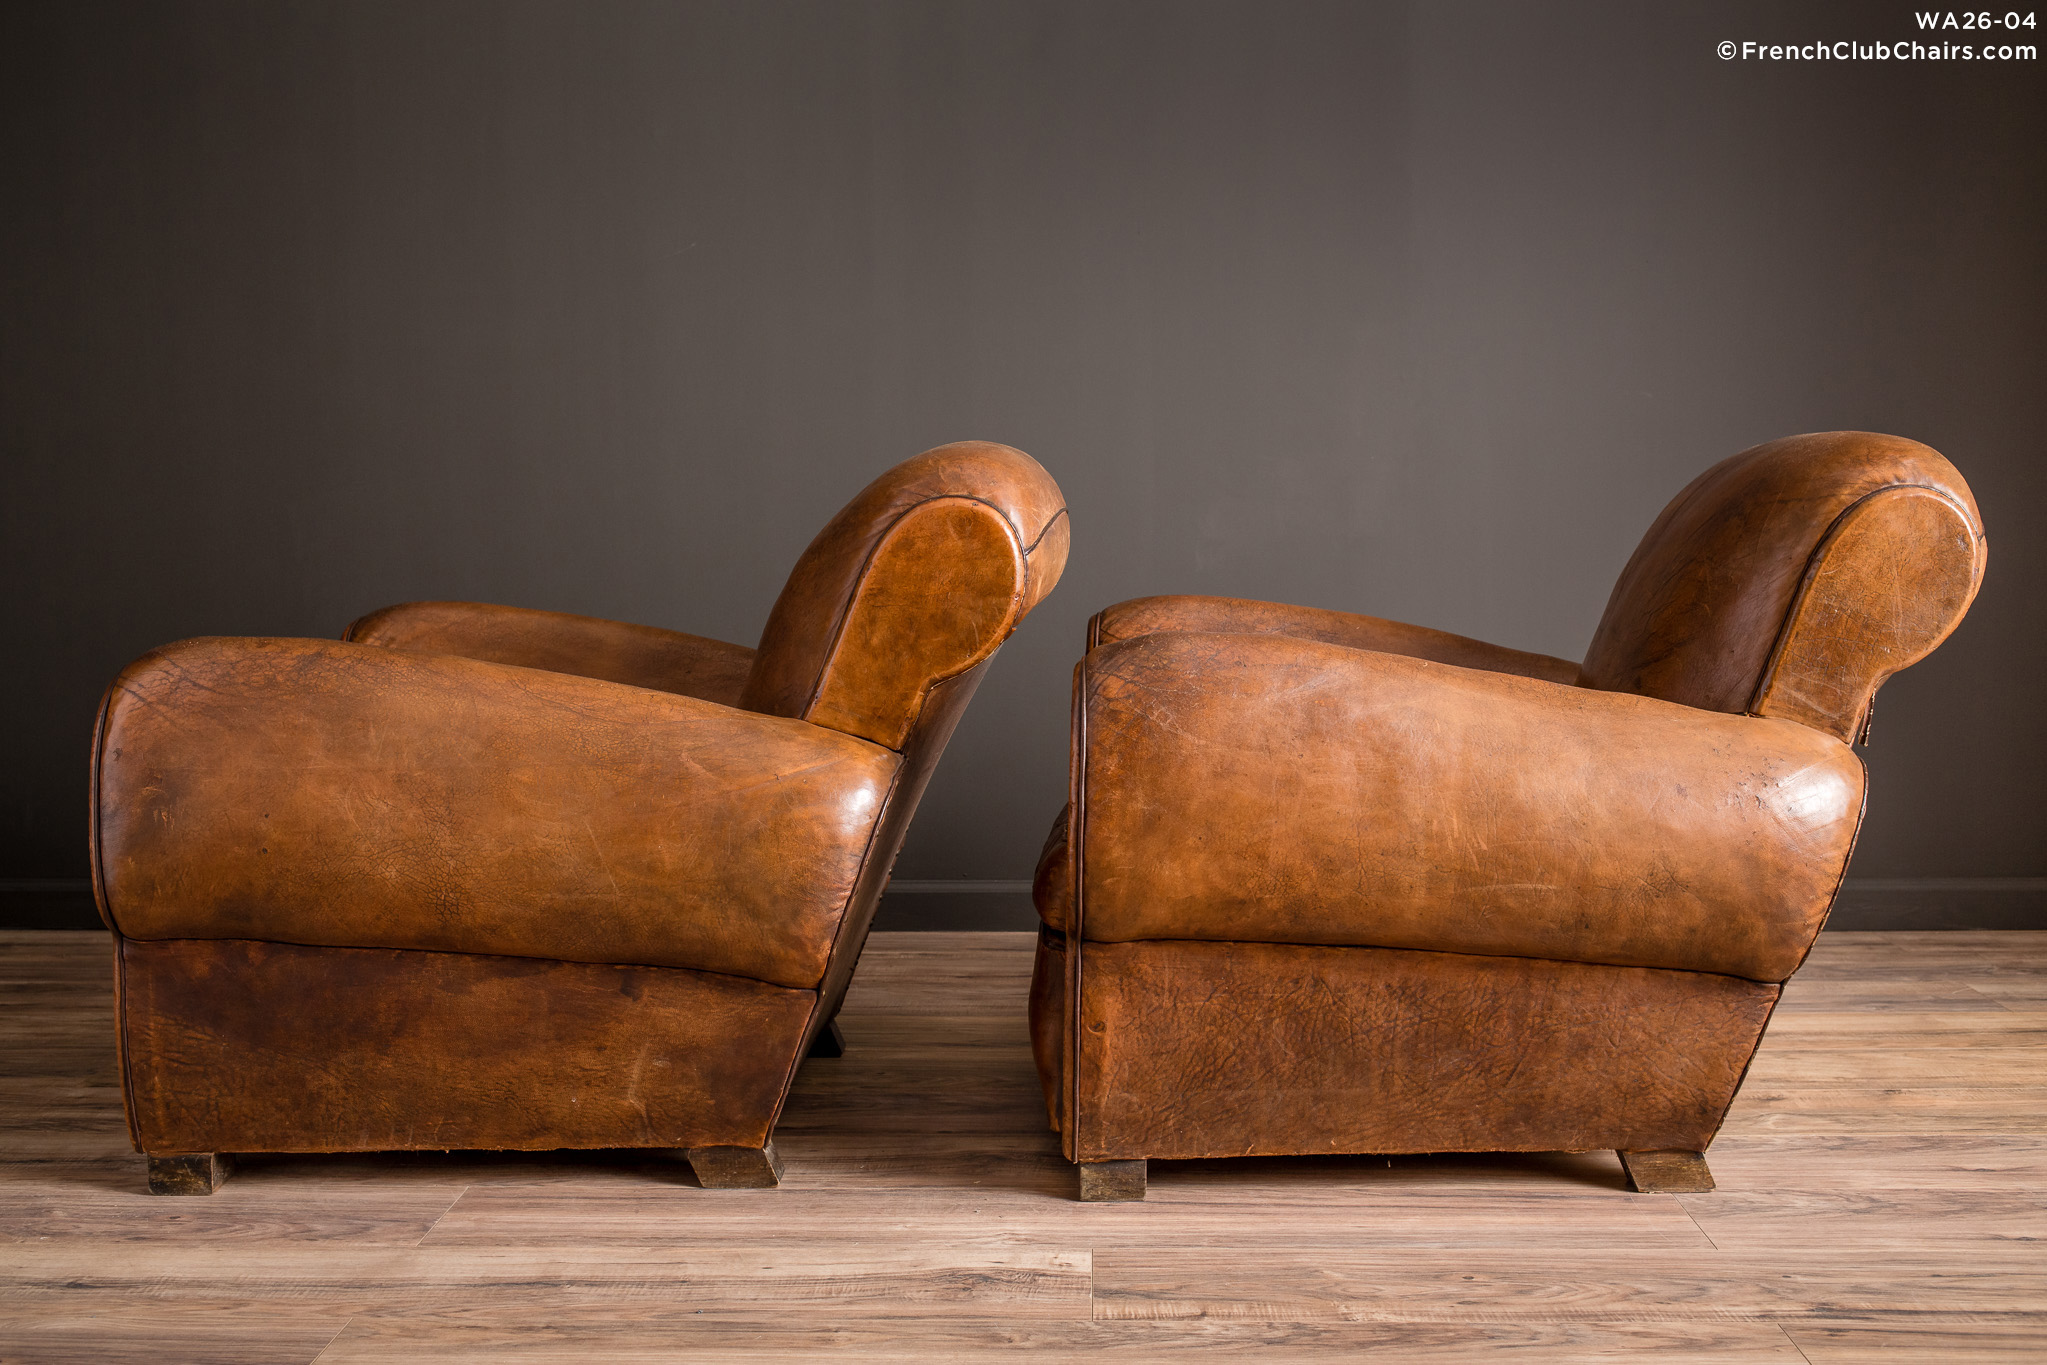 WA_26-04_La_Jura_Rollback_Ancien_Pair_R_4LT-v01-williams-antiks-leather-french-club-chair-wa_fcccom